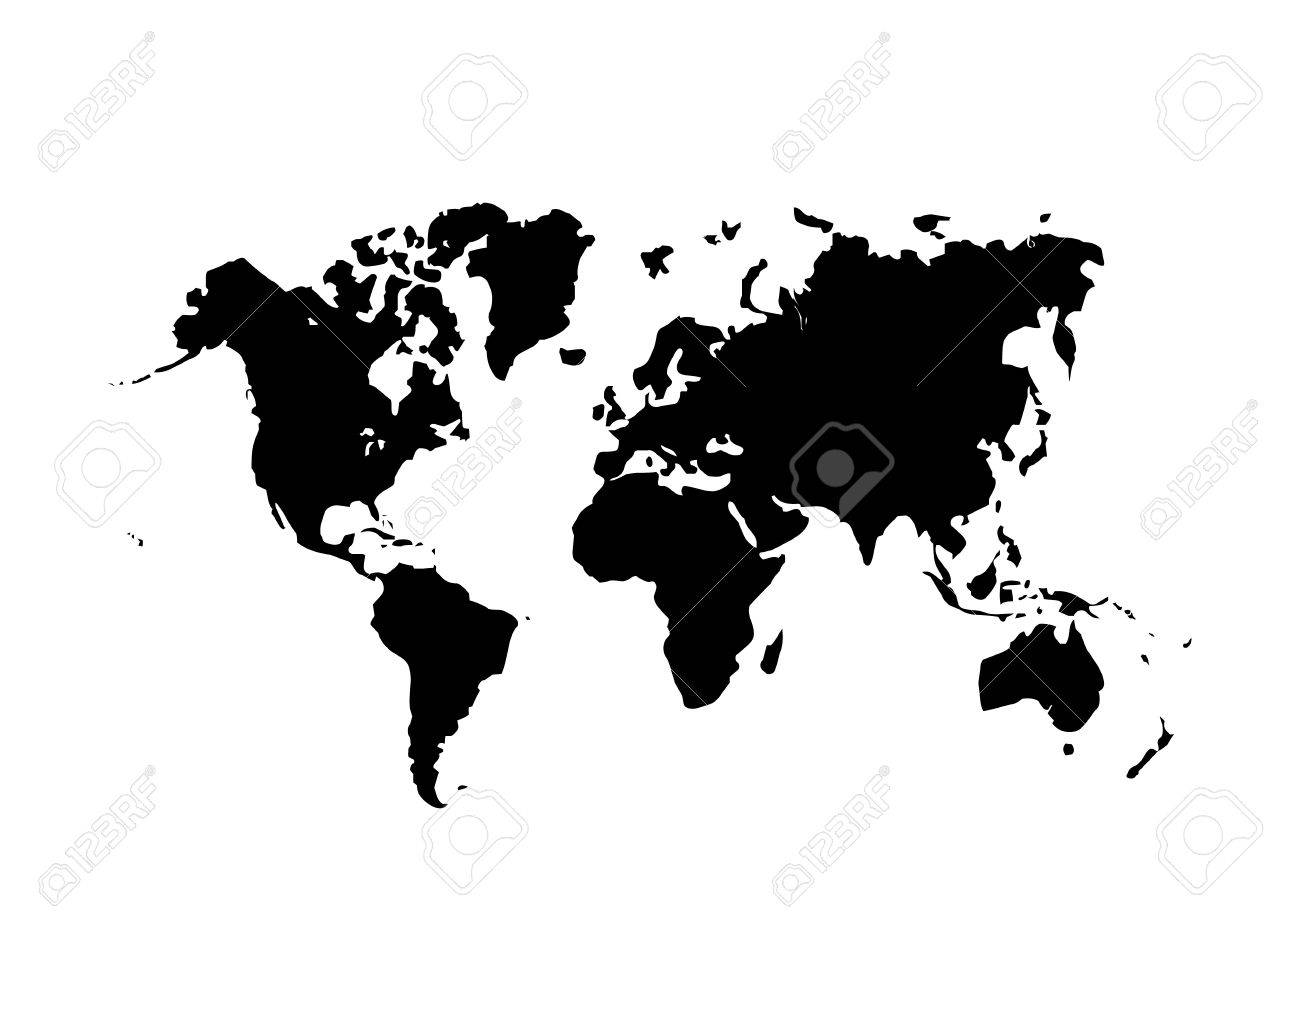 International world map flat vector icon for apps and websites international world map flat vector icon for apps and websites stock vector 44775075 gumiabroncs Gallery